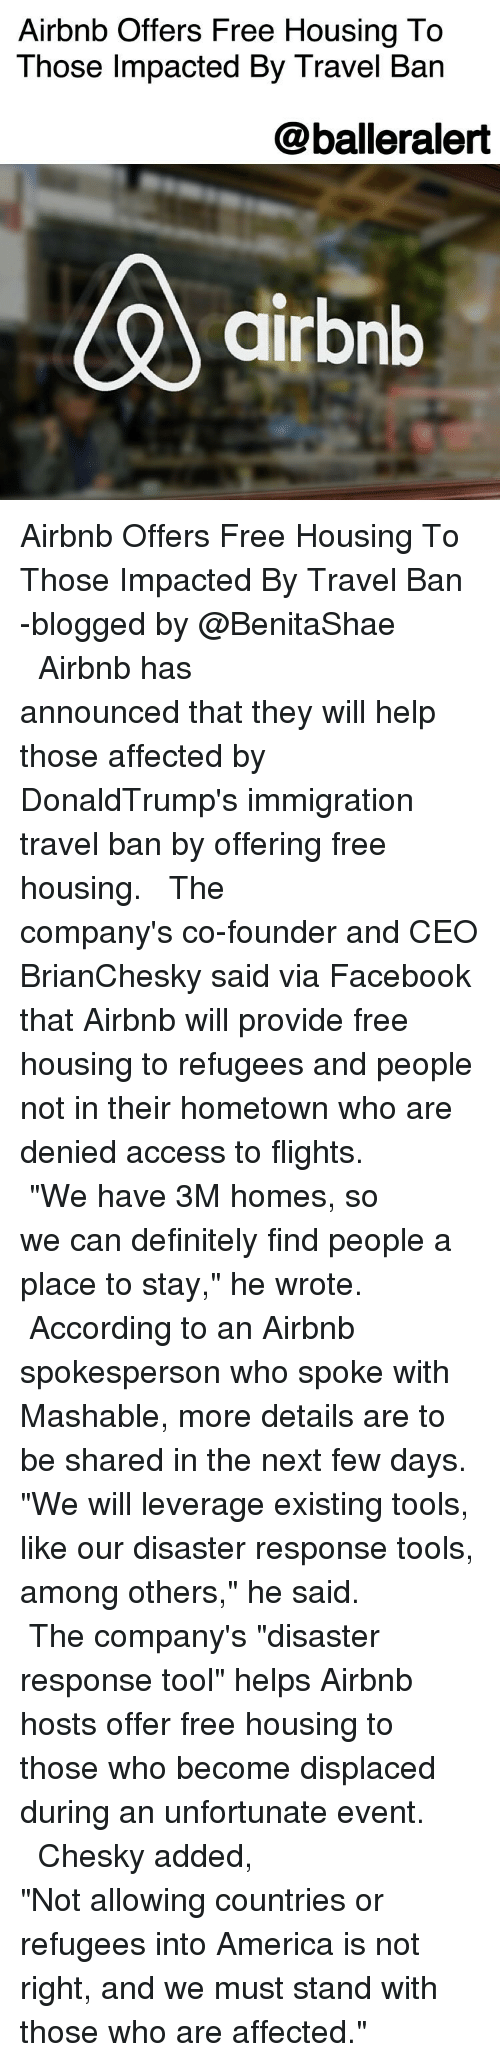 "Leverage: Airbnb Offers Free Housing To  Those Impacted By Travel Ban  @balleralert  airbnb Airbnb Offers Free Housing To Those Impacted By Travel Ban -blogged by @BenitaShae ⠀⠀⠀⠀⠀⠀⠀⠀⠀ ⠀⠀⠀⠀⠀⠀⠀⠀⠀ Airbnb has announced that they will help those affected by DonaldTrump's immigration travel ban by offering free housing. ⠀⠀⠀⠀⠀⠀⠀⠀⠀ ⠀⠀⠀⠀⠀⠀⠀⠀⠀ The company's co-founder and CEO BrianChesky said via Facebook that Airbnb will provide free housing to refugees and people not in their hometown who are denied access to flights. ⠀⠀⠀⠀⠀⠀⠀⠀⠀ ⠀⠀⠀⠀⠀⠀⠀⠀⠀ ""We have 3M homes, so we can definitely find people a place to stay,"" he wrote. ⠀⠀⠀⠀⠀⠀⠀⠀⠀ ⠀⠀⠀⠀⠀⠀⠀⠀⠀ According to an Airbnb spokesperson who spoke with Mashable, more details are to be shared in the next few days. ""We will leverage existing tools, like our disaster response tools, among others,"" he said. ⠀⠀⠀⠀⠀⠀⠀⠀⠀ ⠀⠀⠀⠀⠀⠀⠀⠀⠀ The company's ""disaster response tool"" helps Airbnb hosts offer free housing to those who become displaced during an unfortunate event. ⠀⠀⠀⠀⠀⠀⠀⠀⠀ ⠀⠀⠀⠀⠀⠀⠀⠀⠀ Chesky added, ""Not allowing countries or refugees into America is not right, and we must stand with those who are affected."""